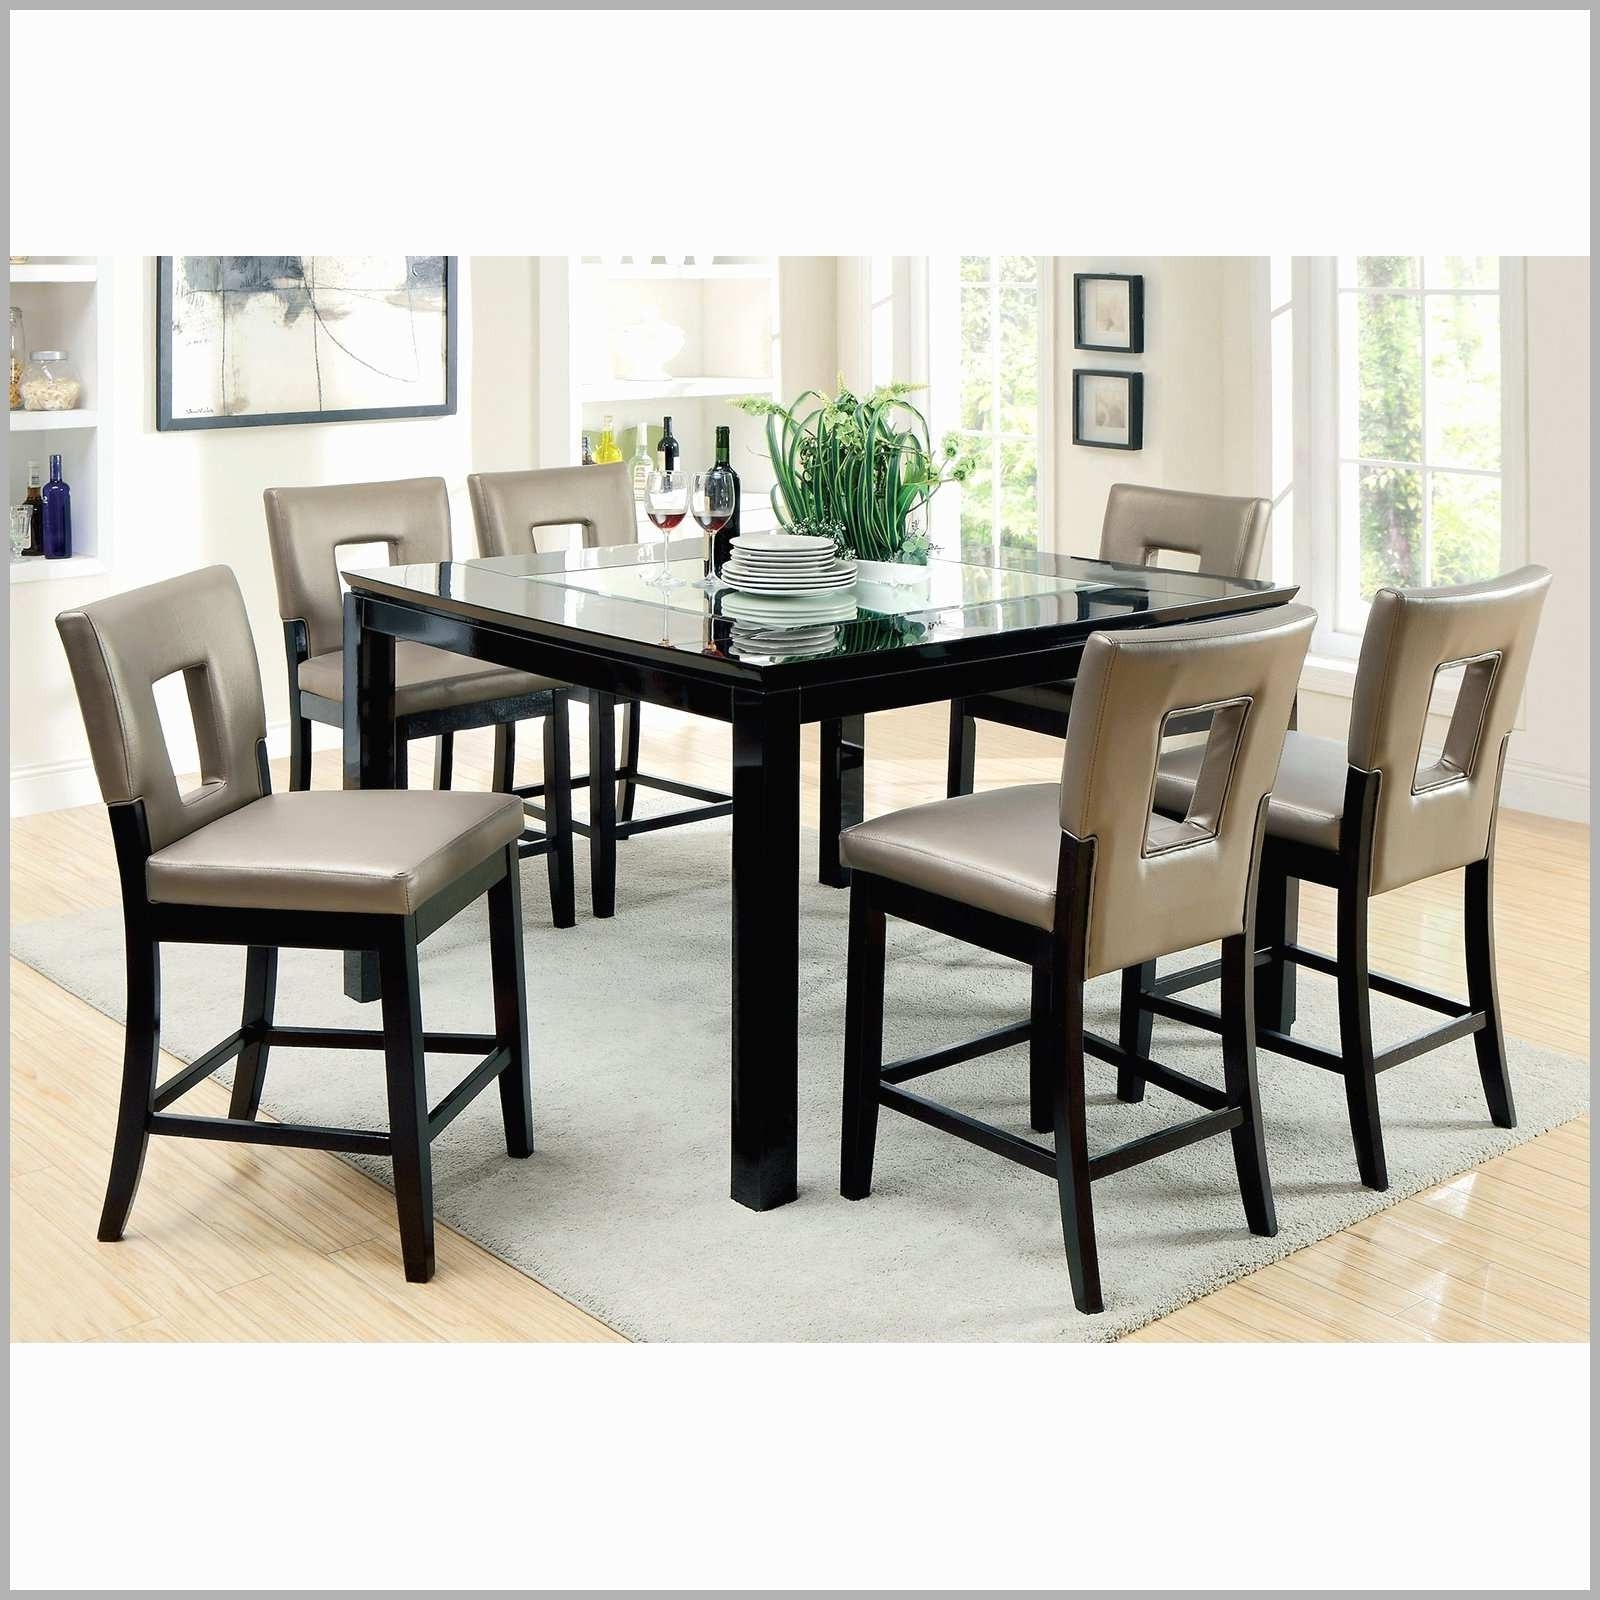 Widely Used 8 Seater Dining Tables And Chairs In White High Gloss Extending Dining Table Luxury 8 Seater Dining Table (View 25 of 25)